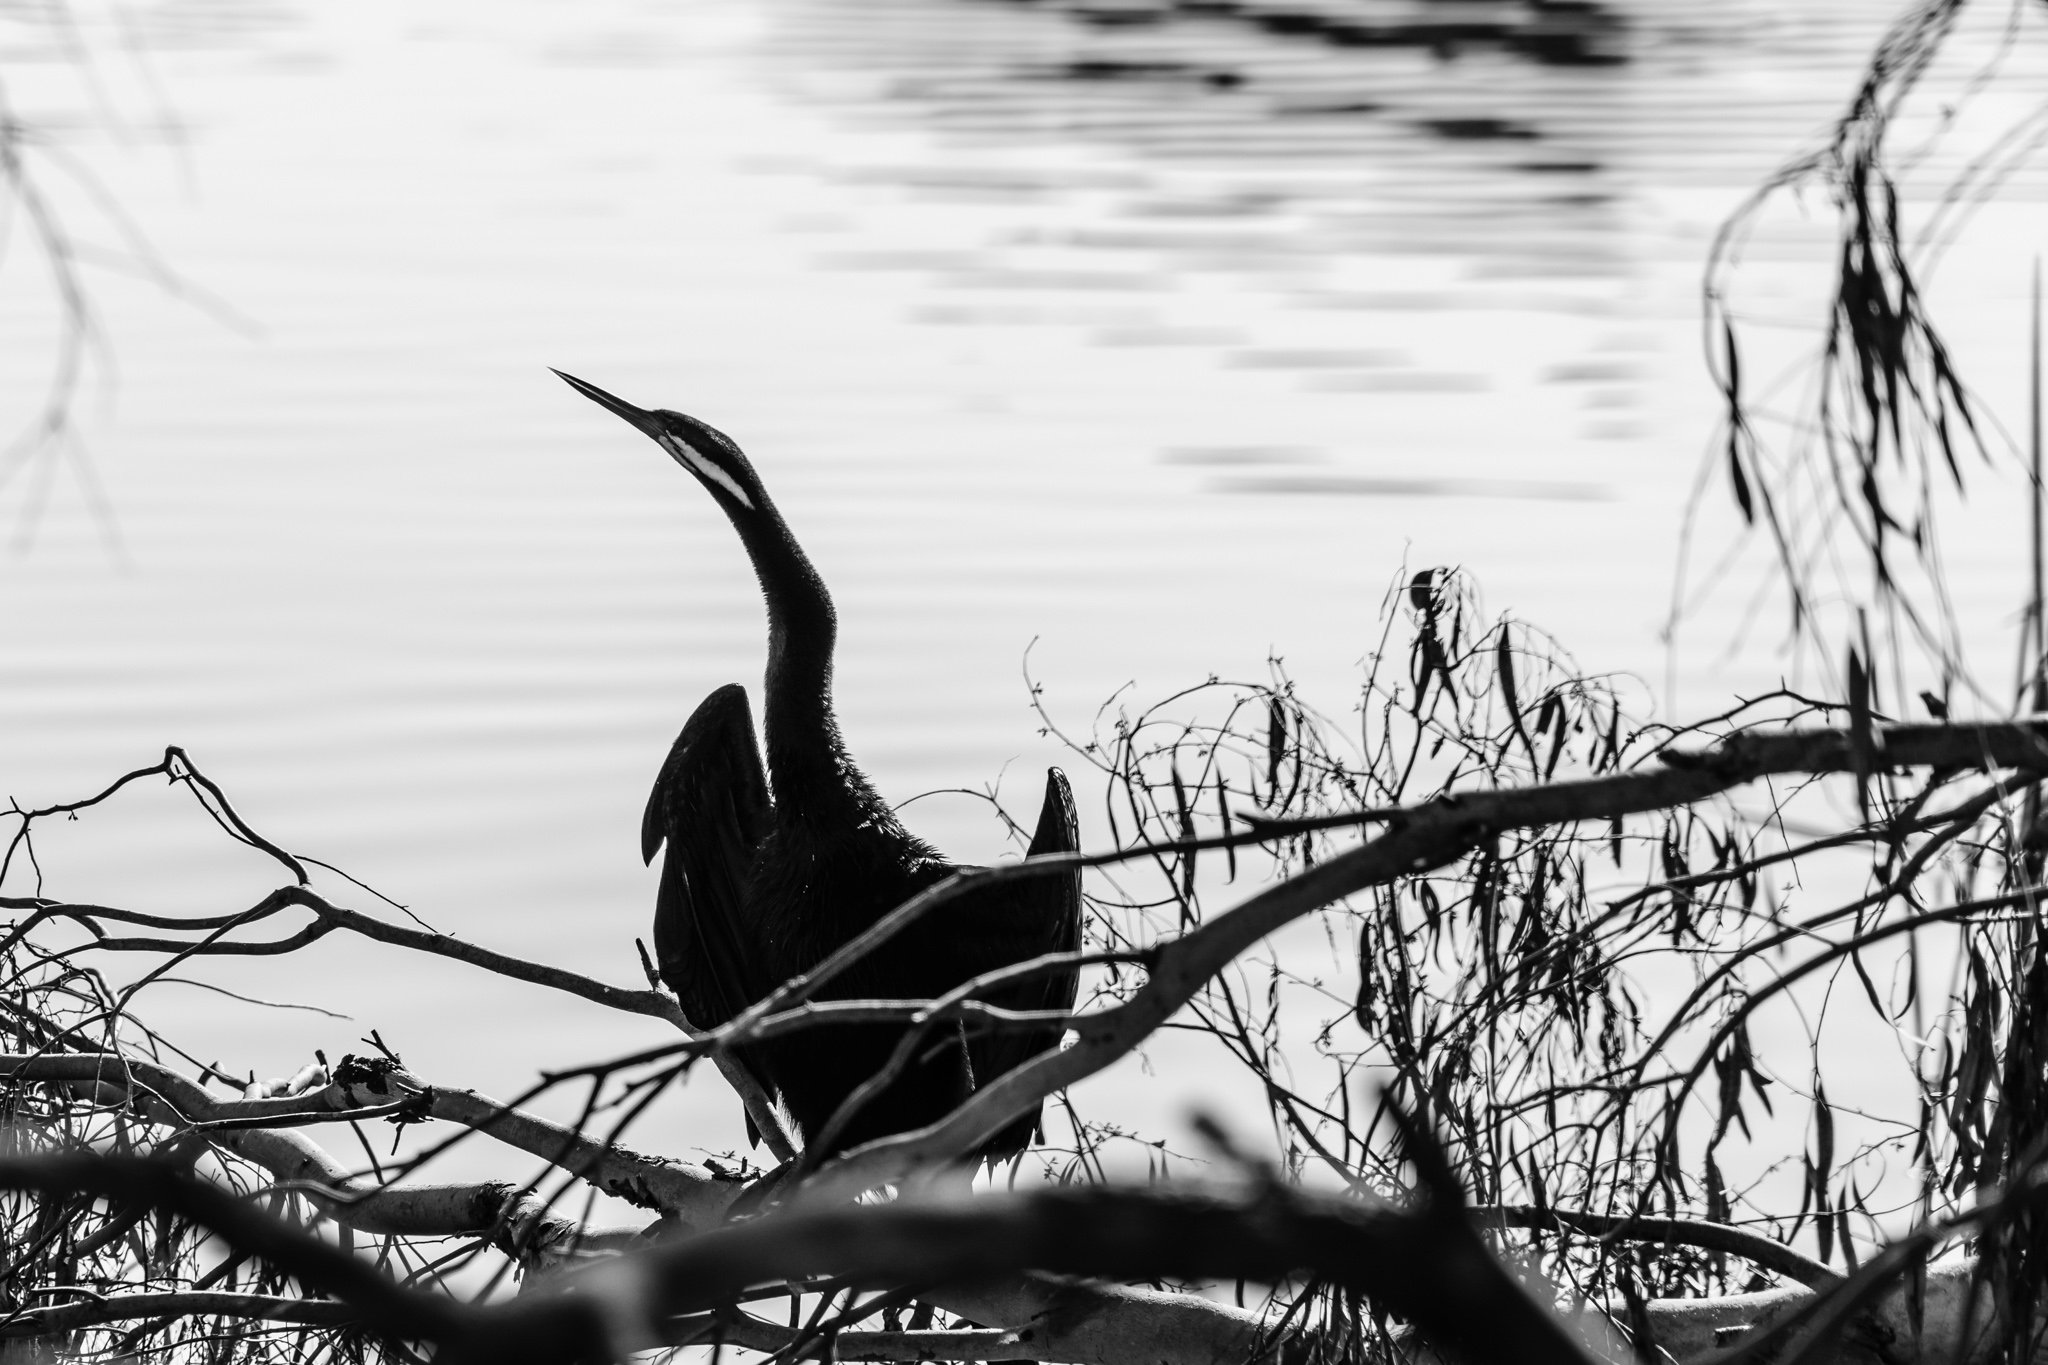 Australasian Darter on Lake Ginninderra